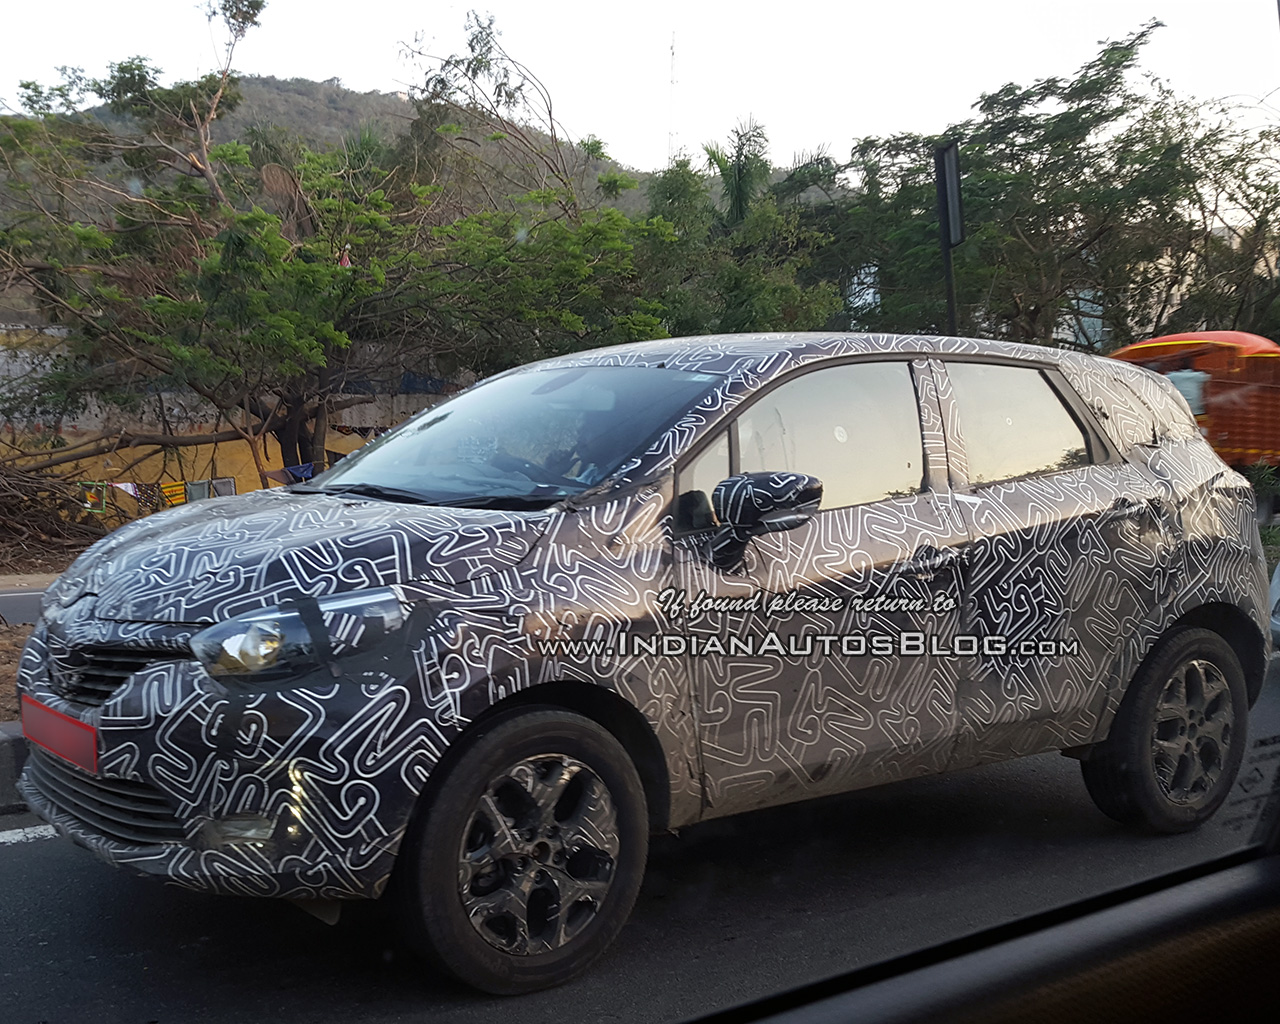 renault kaptur spied on test in india to rival the. Black Bedroom Furniture Sets. Home Design Ideas